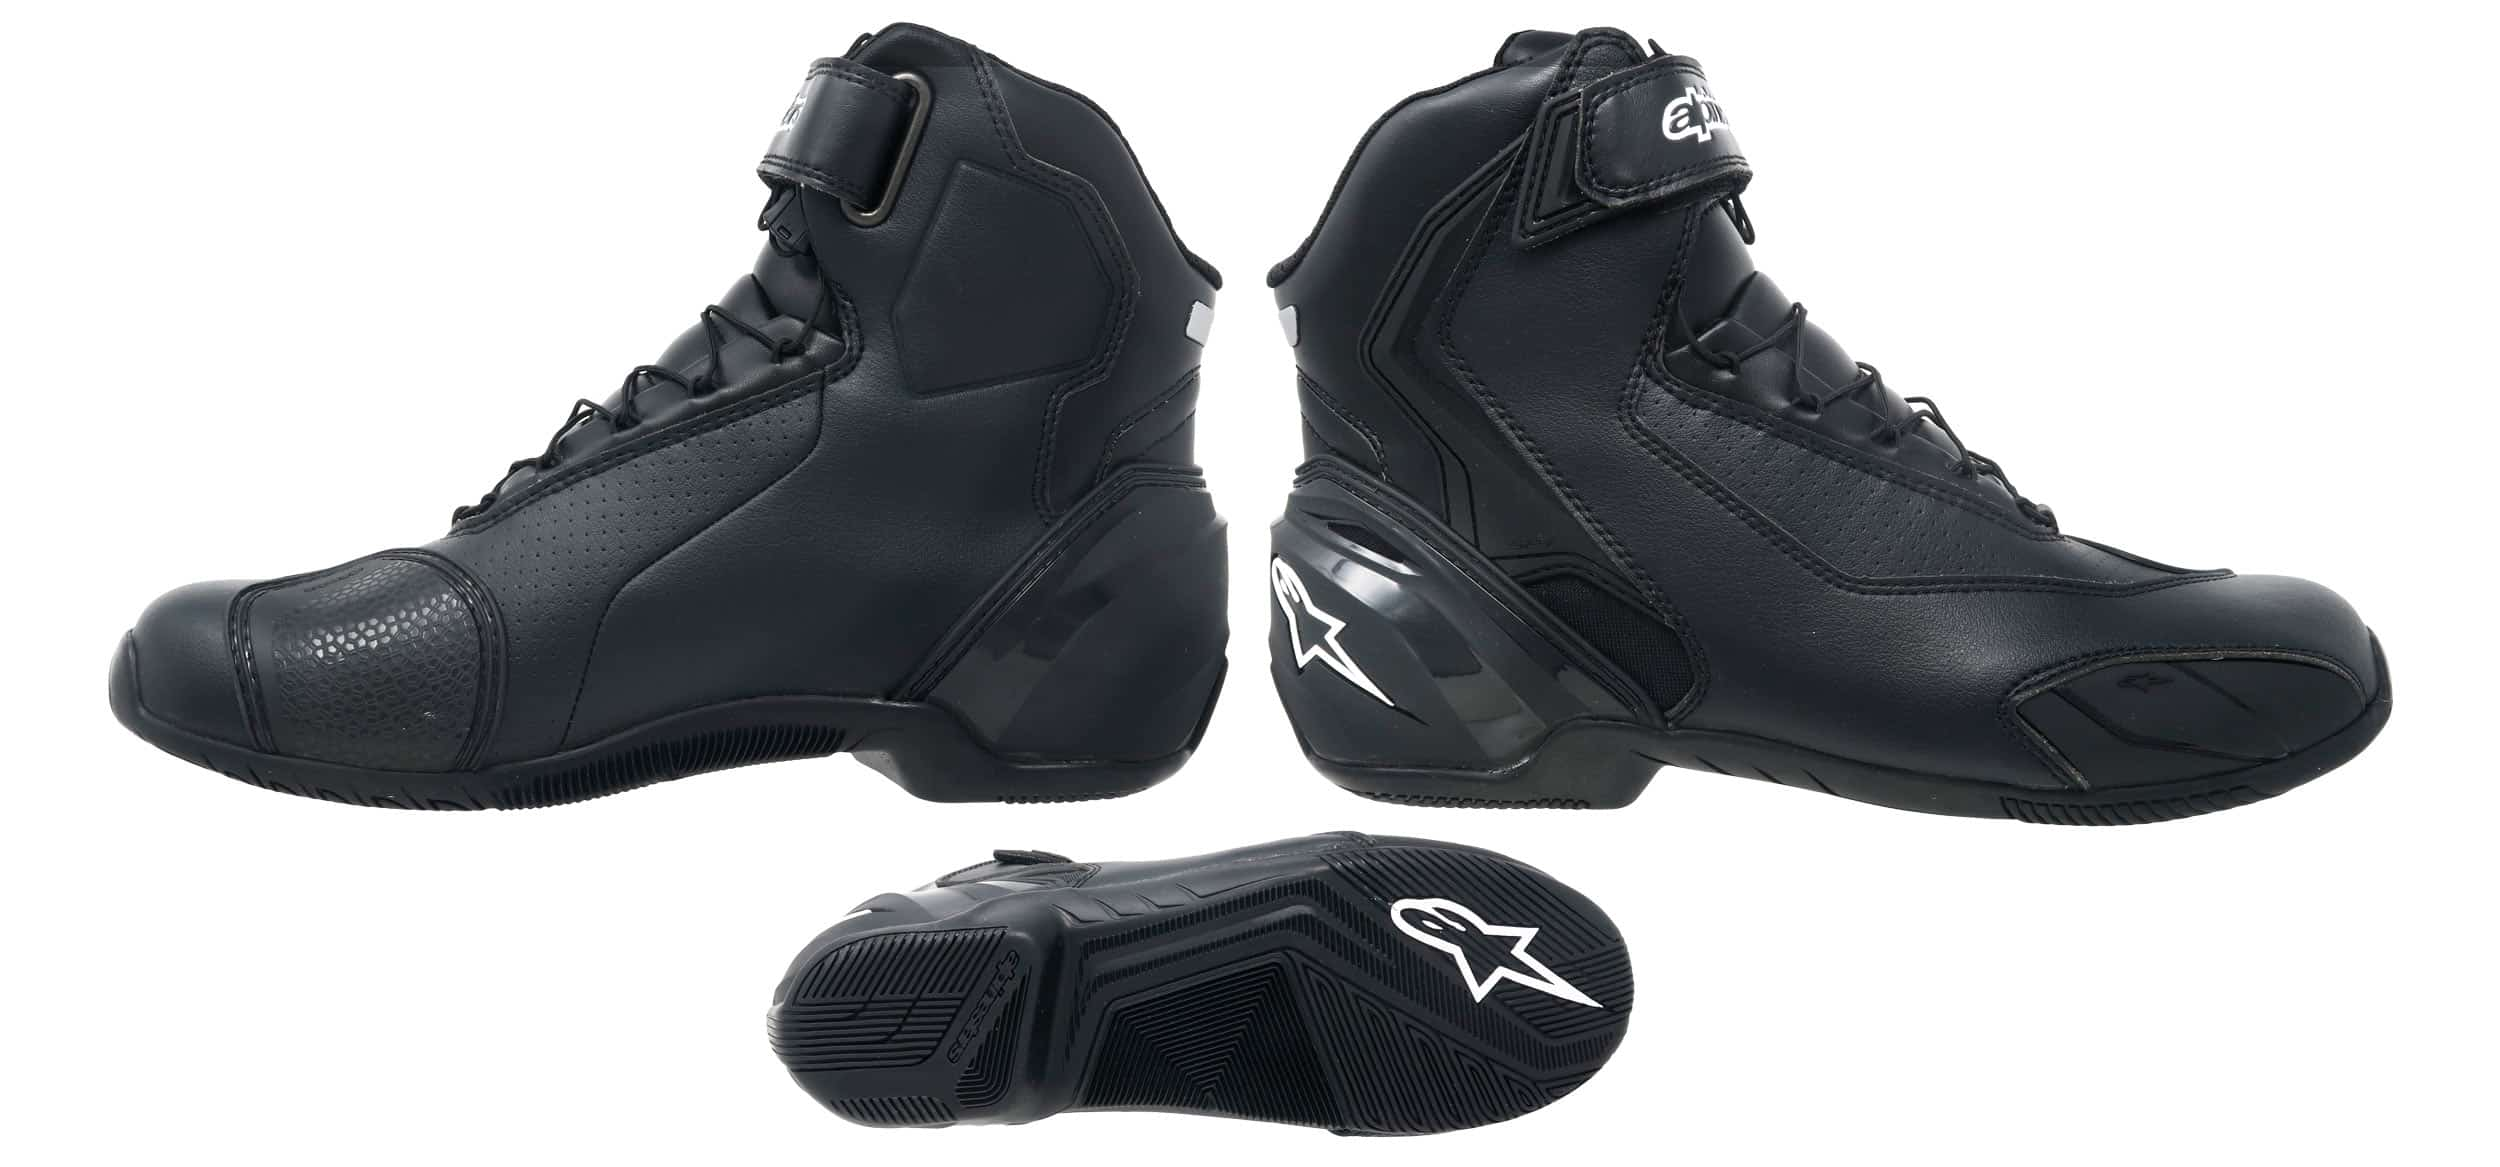 Alpinestars SP-1 2 riding shoes